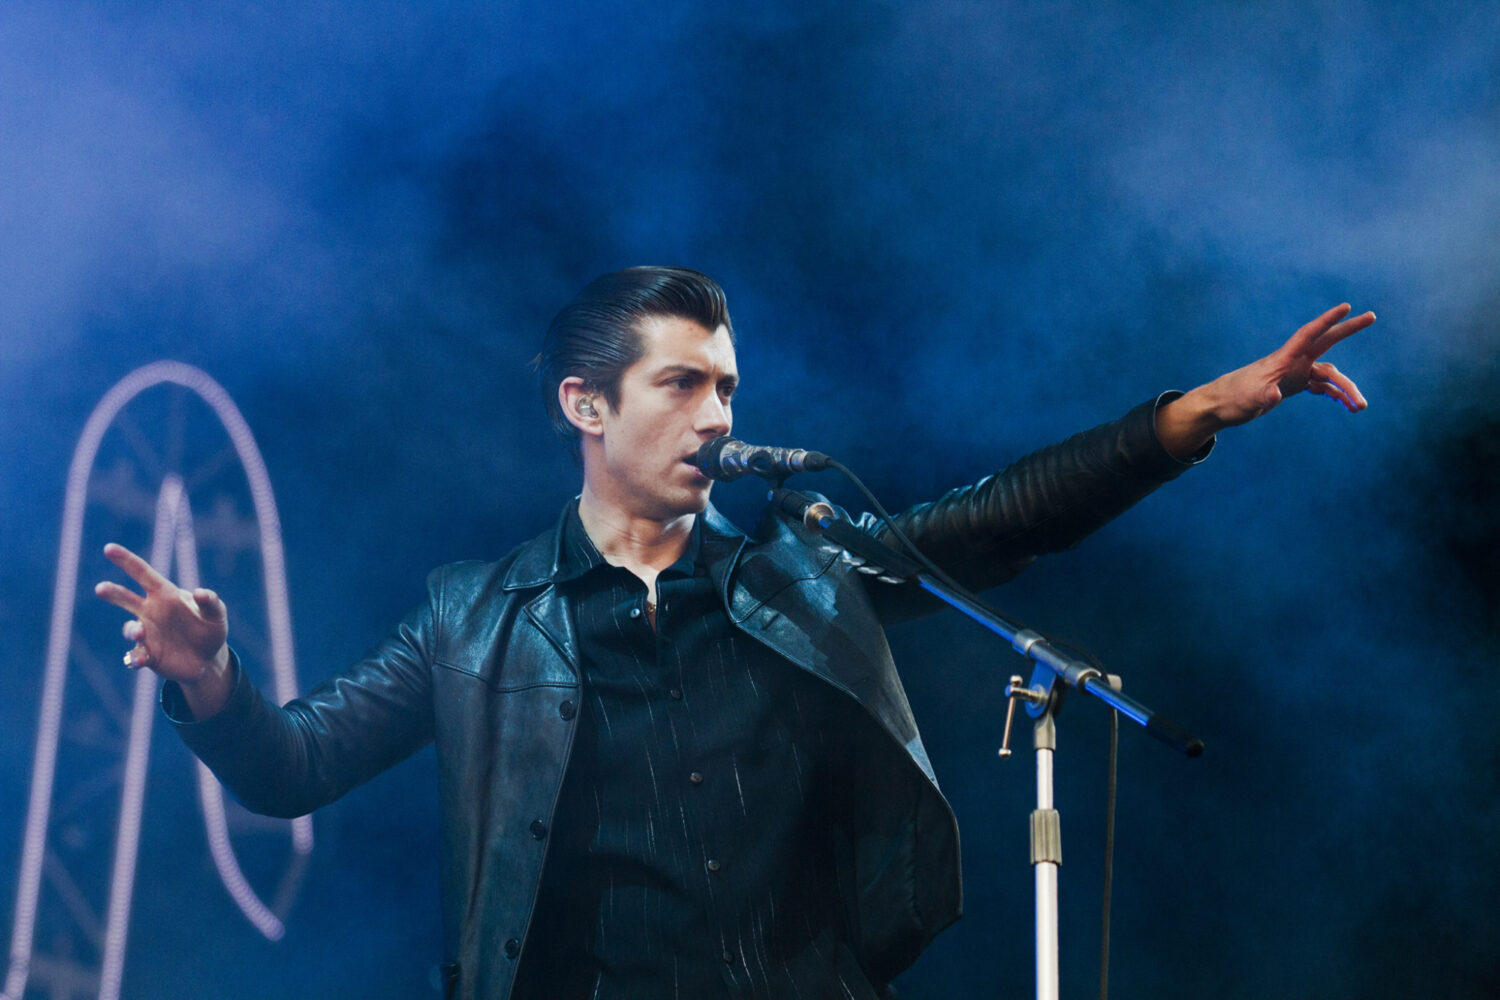 Arctic Monkeys win big at European Festival Awards 2014